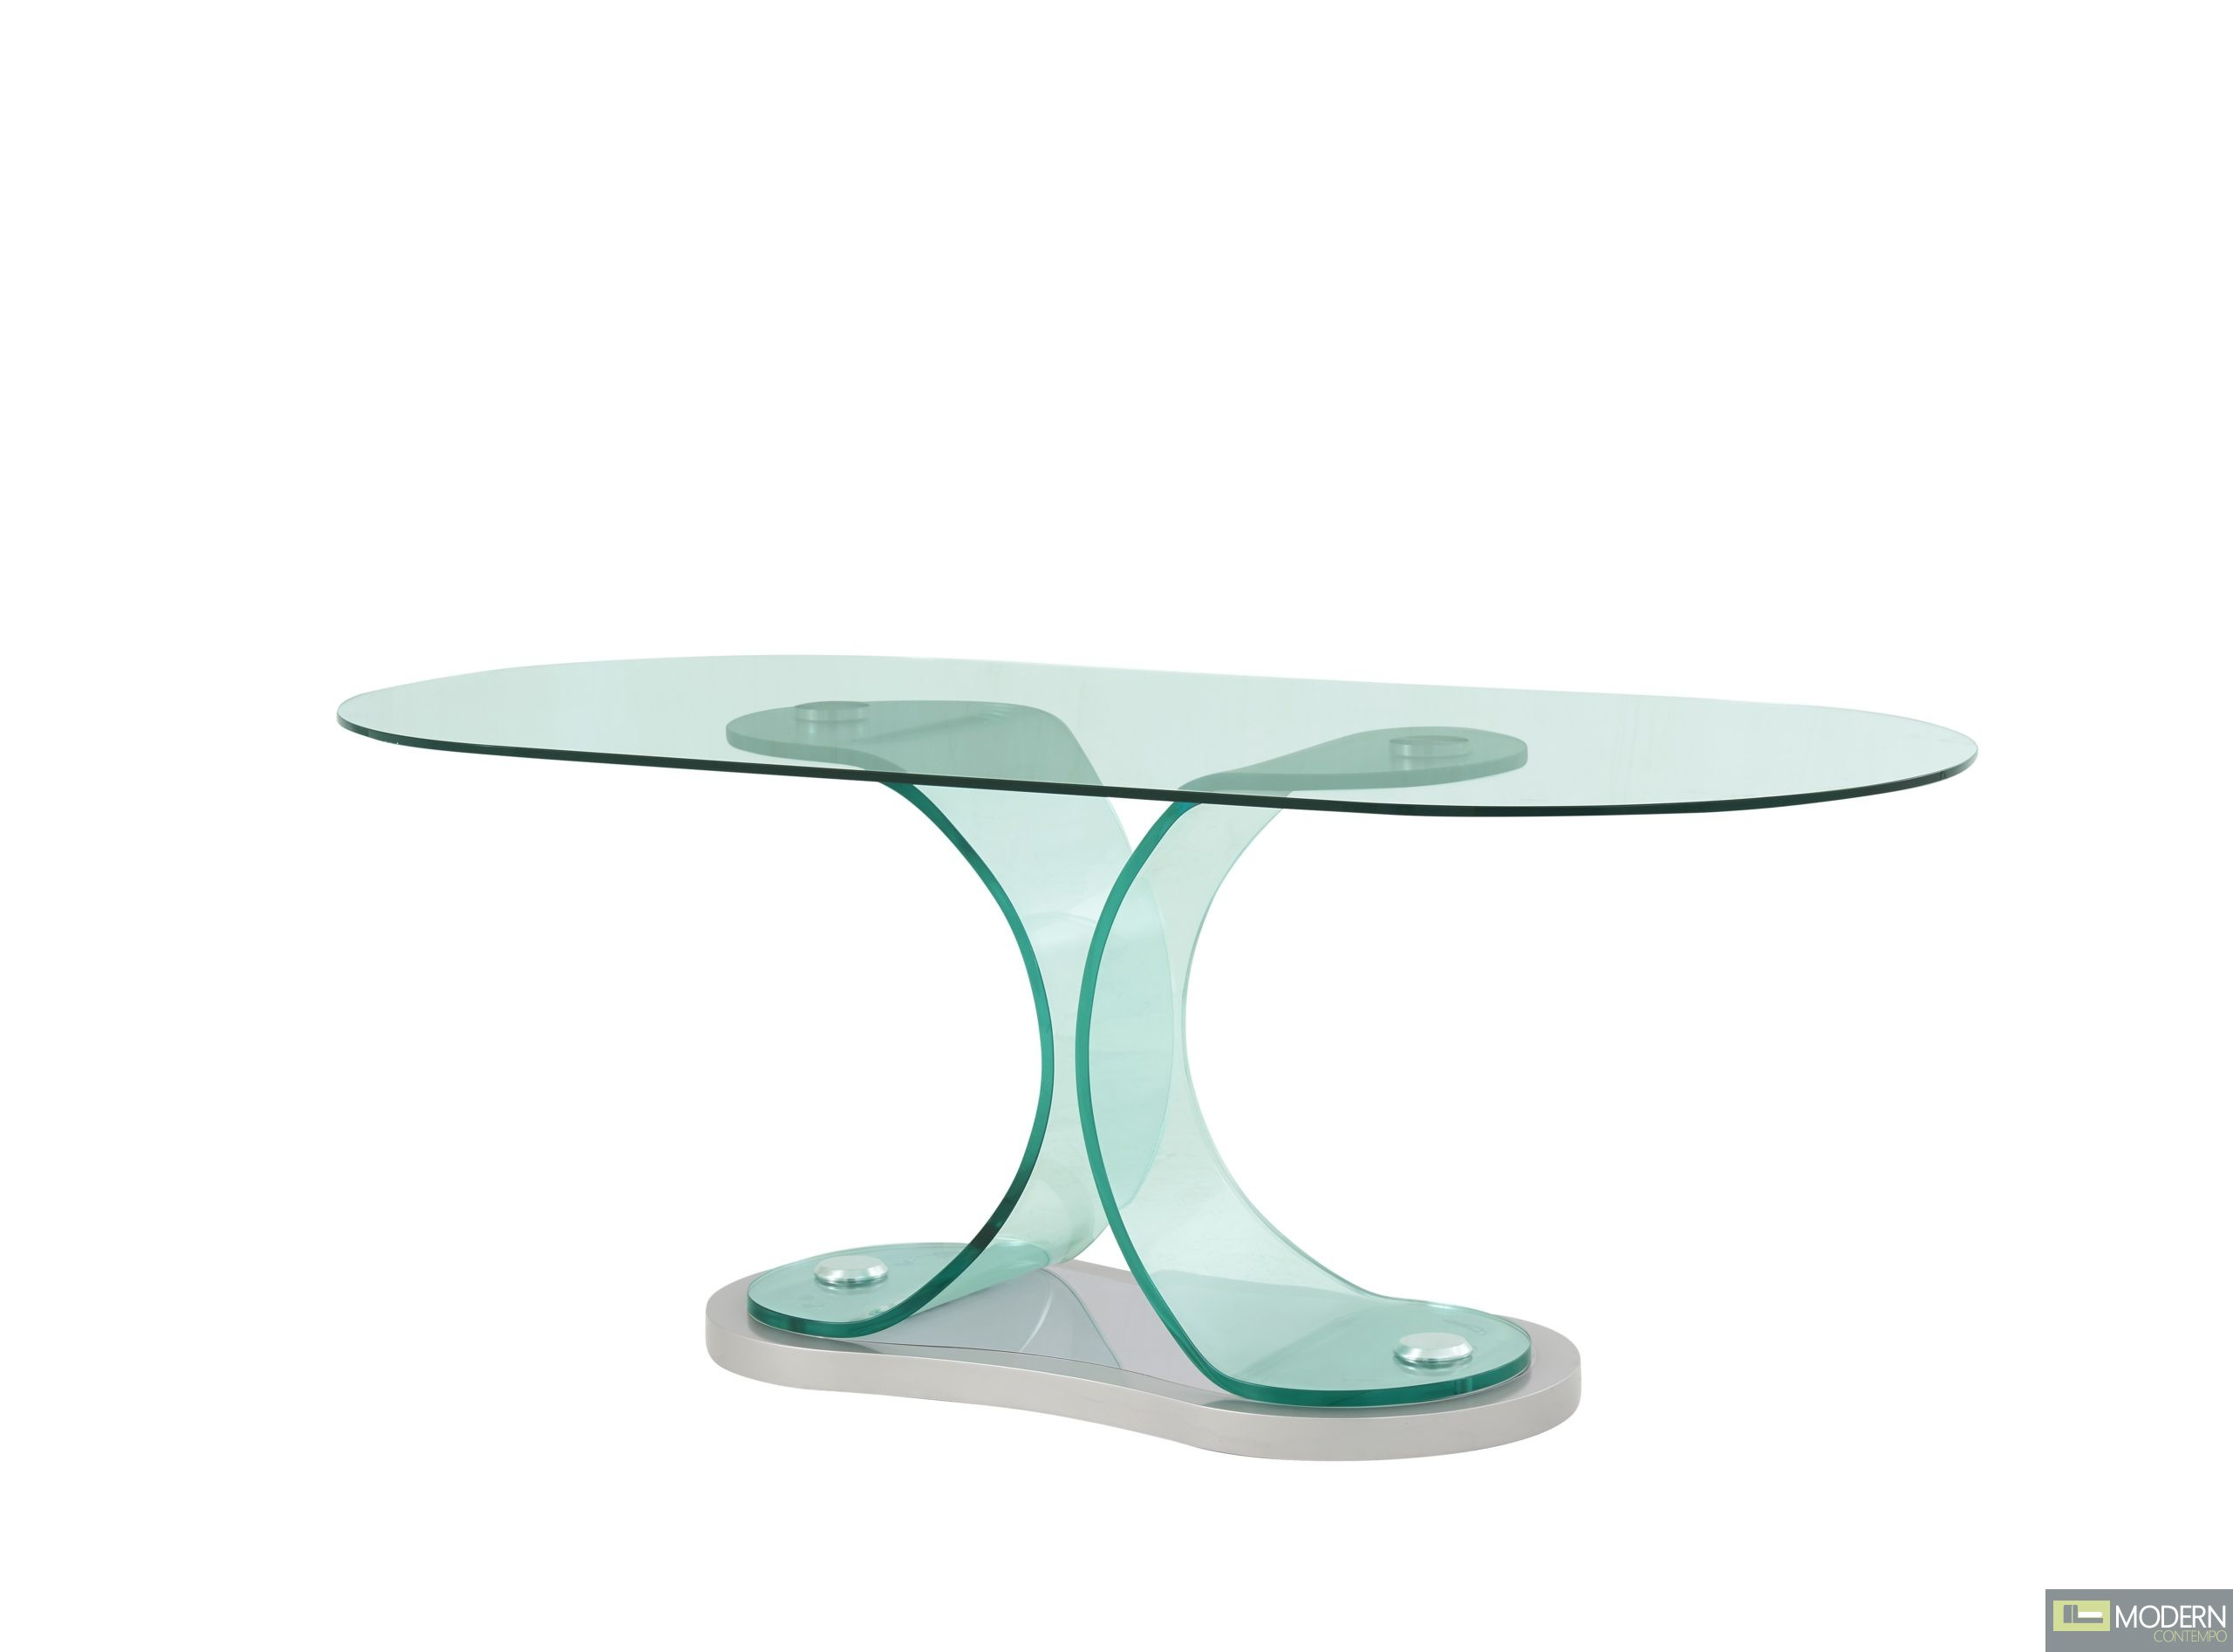 Bagnoli Contemporary oval bent glass dining table